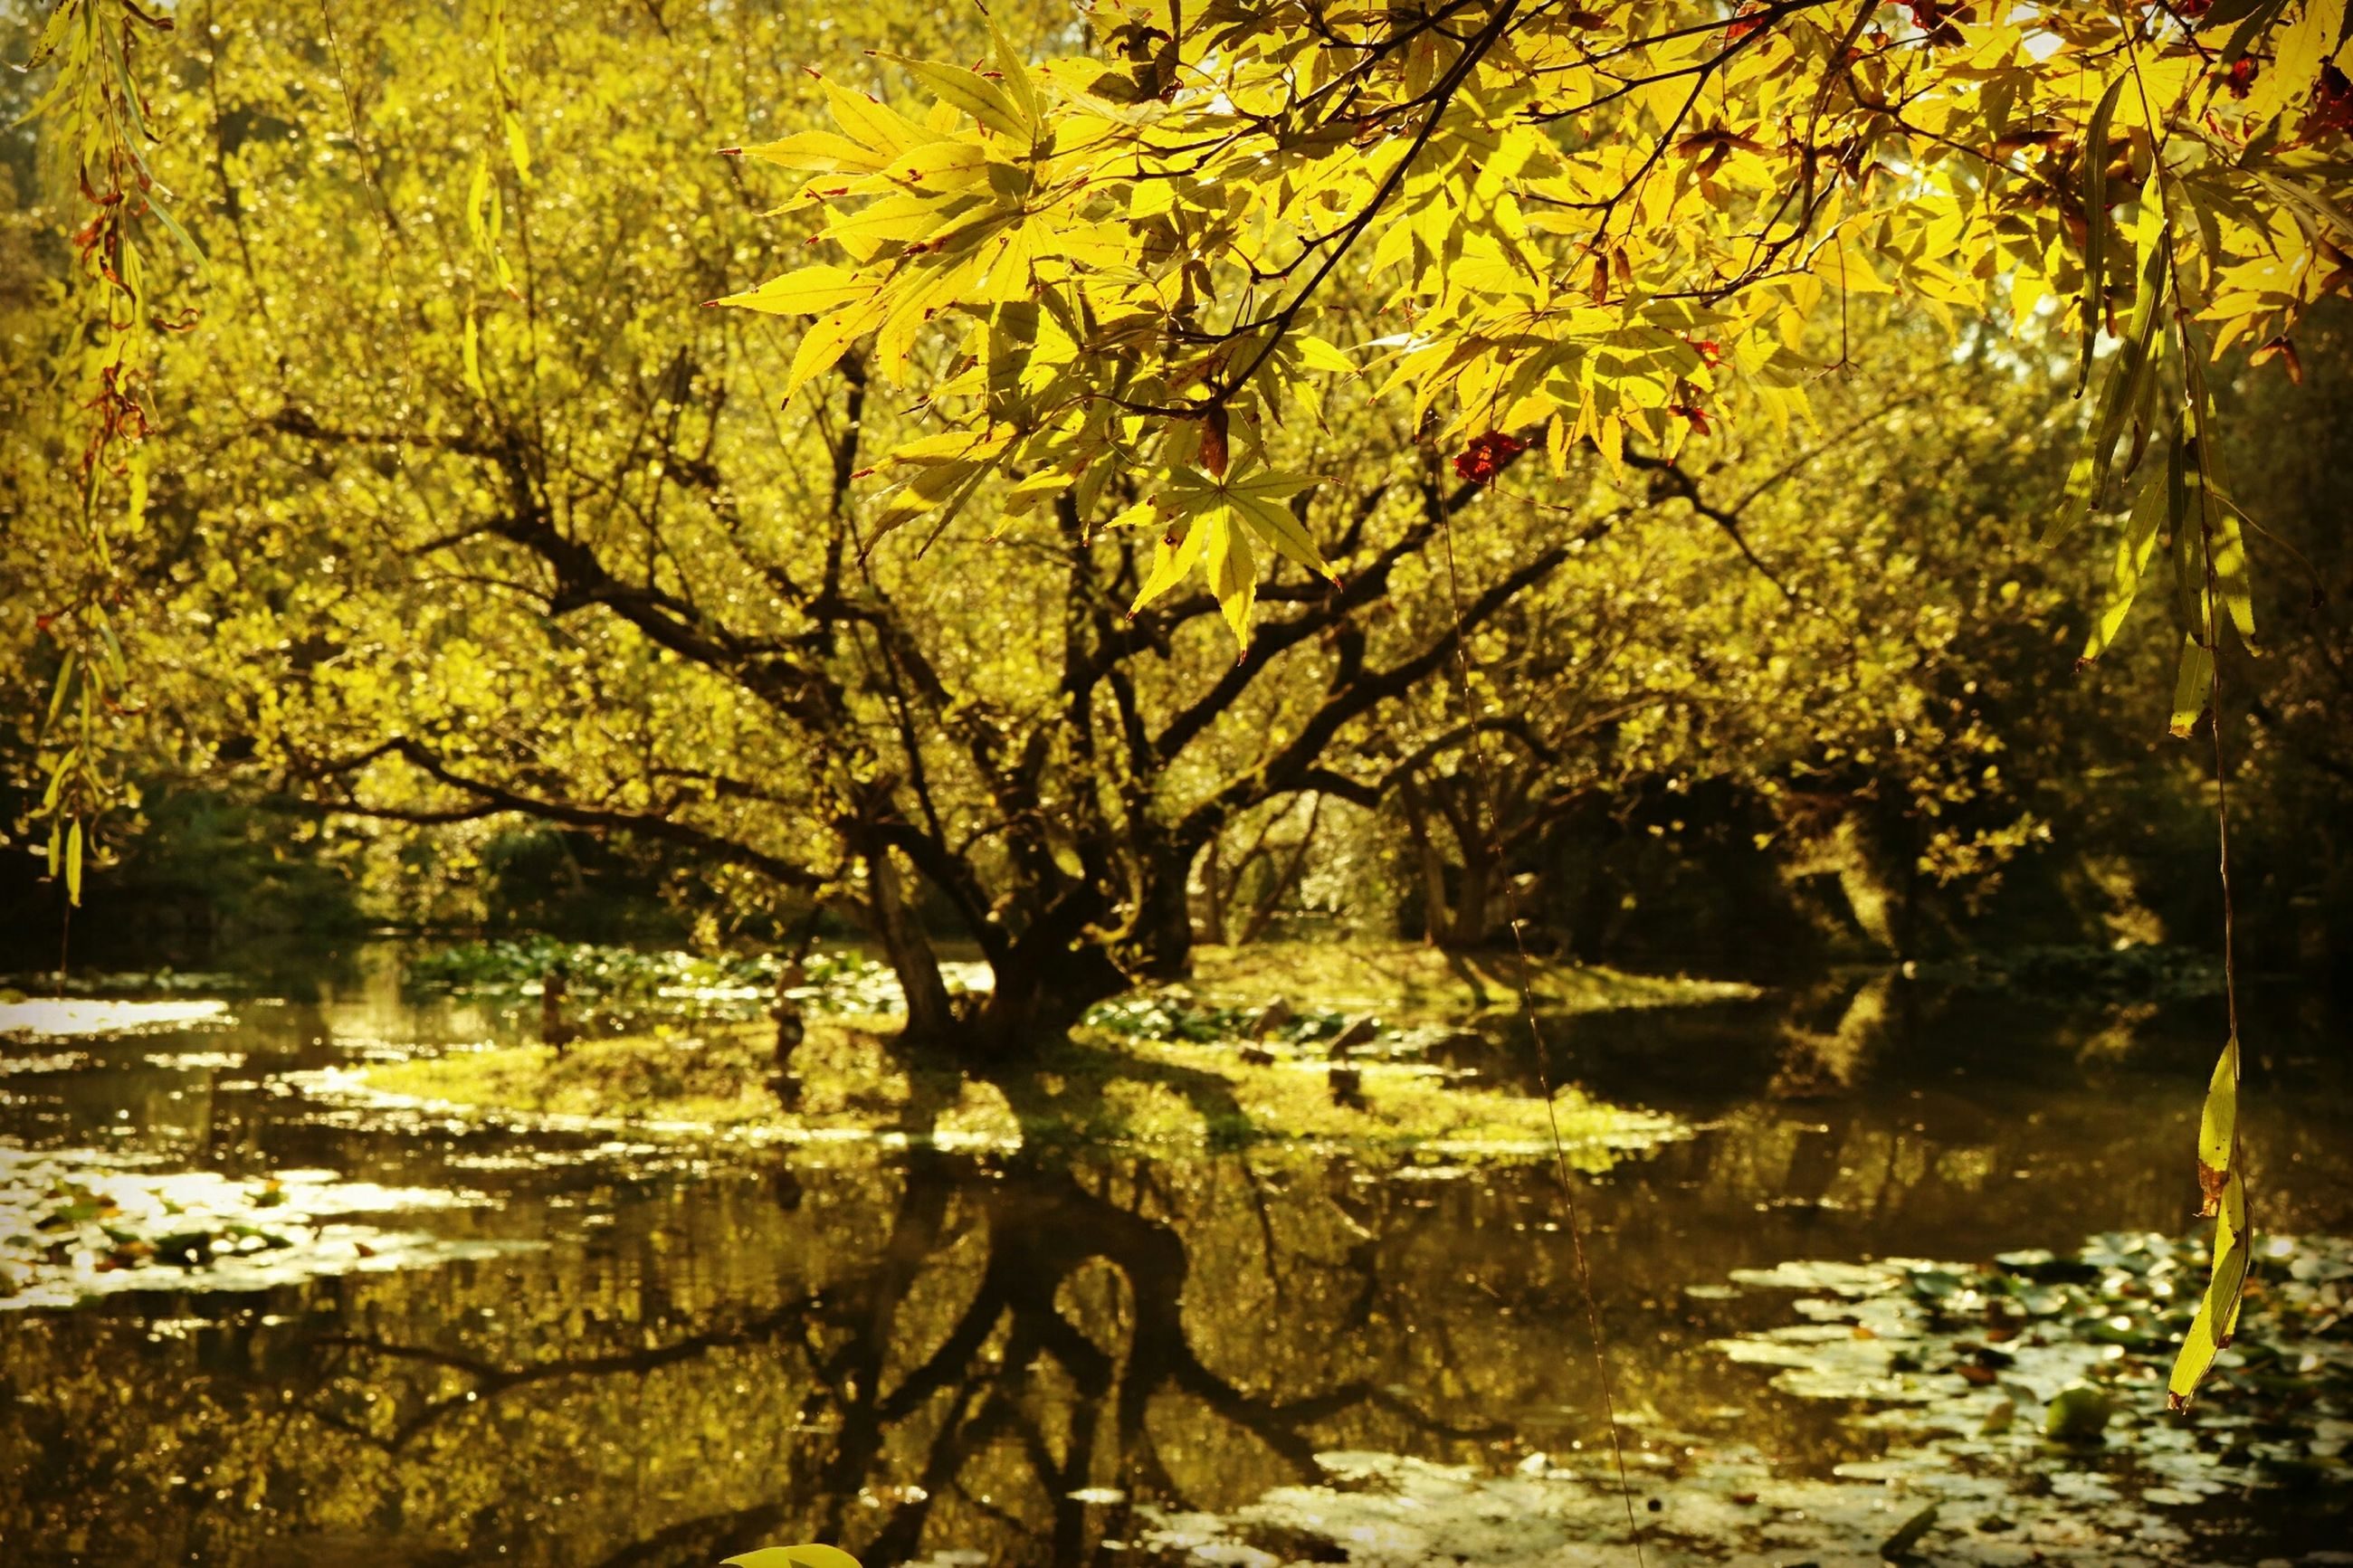 tree, nature, reflection, branch, yellow, water, beauty in nature, tranquility, lake, tranquil scene, idyllic, growth, no people, autumn, outdoors, forest, scenics, romantic, willow tree, day